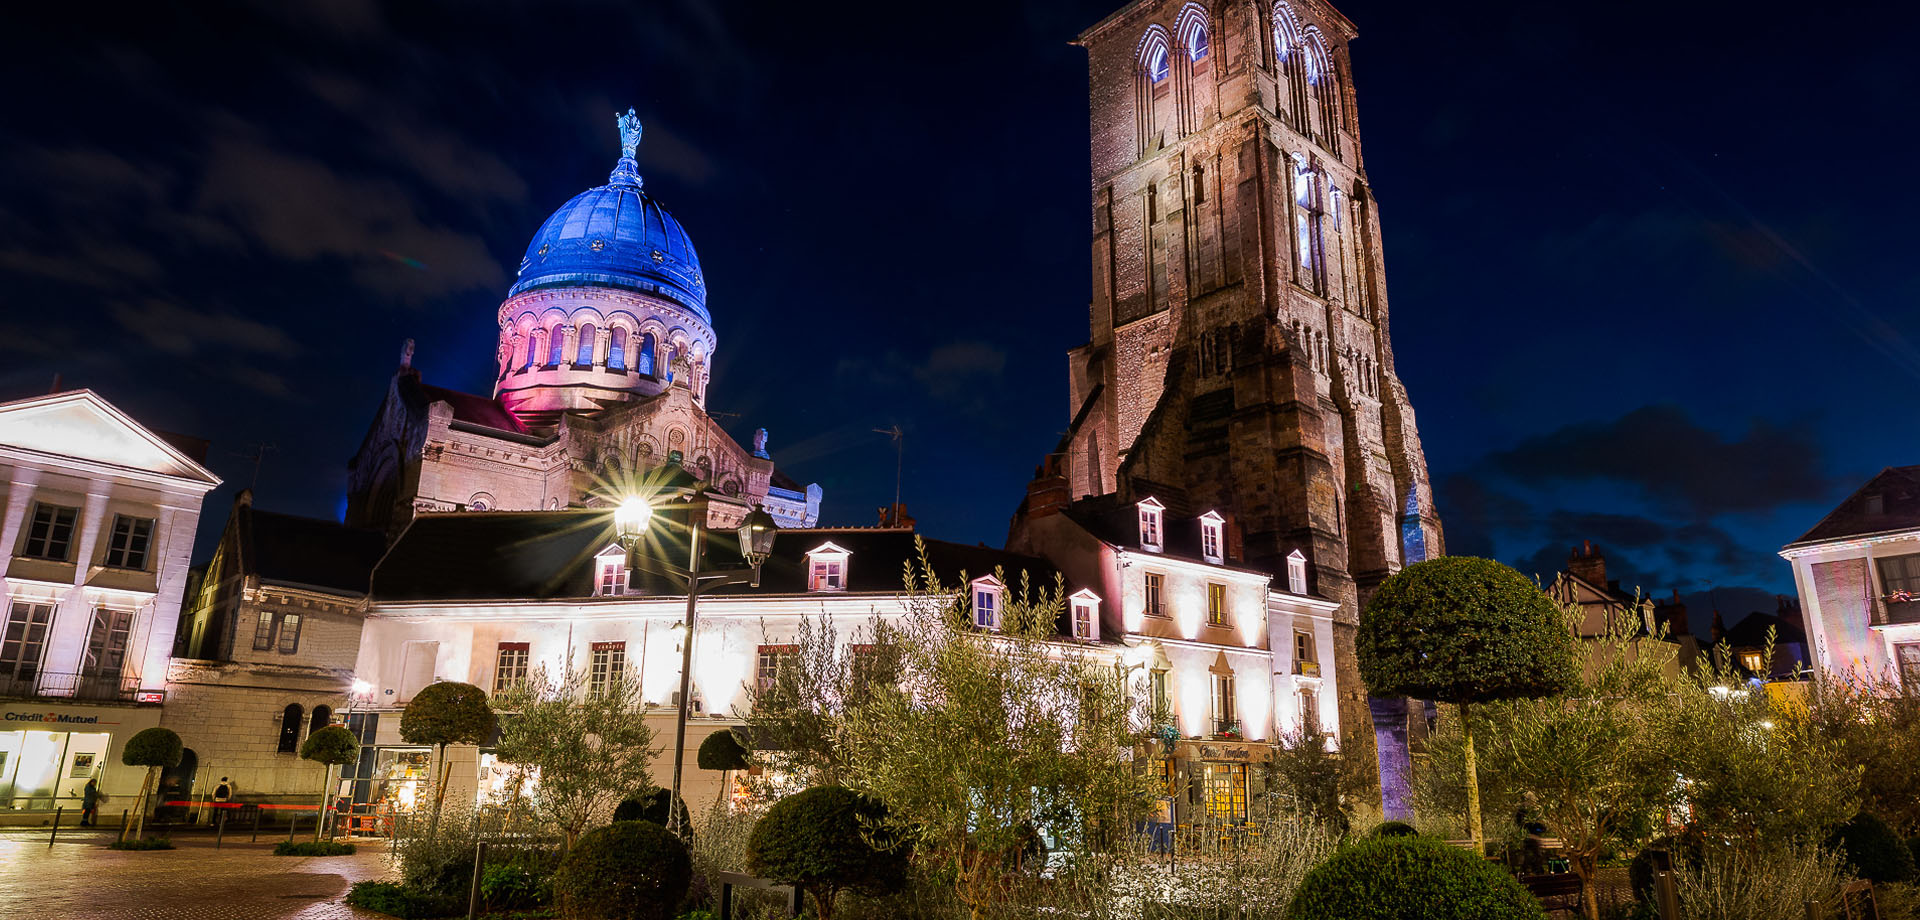 Saint-Martin Basilica and the Charlemagne tower